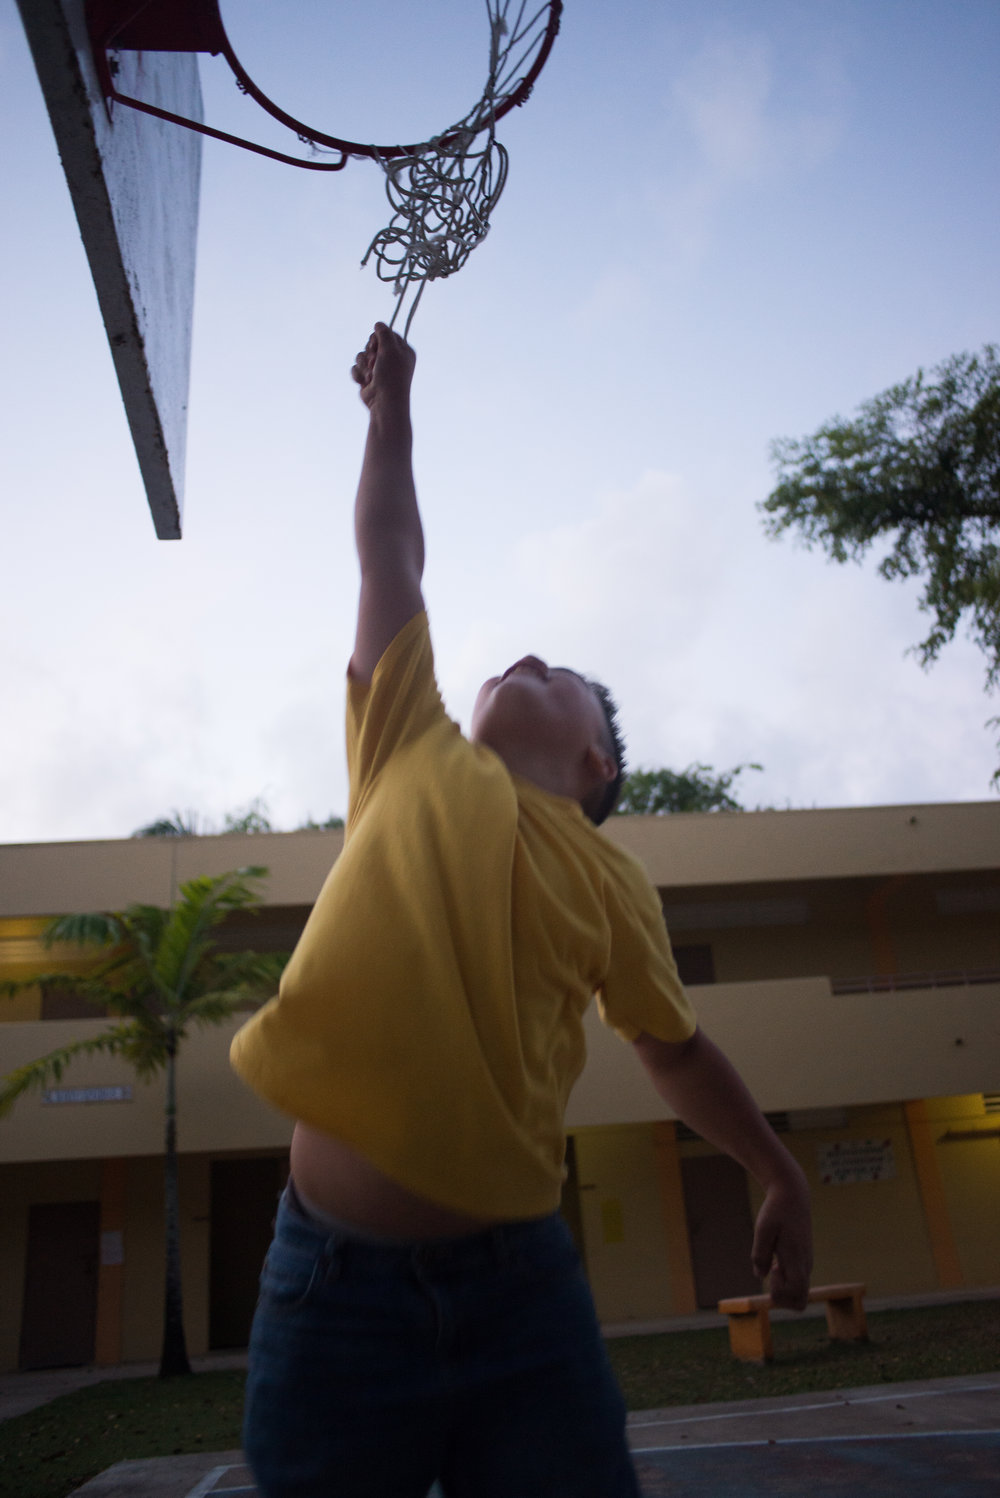 6/7/18 – Bayamón, Puerto Rico – The Puerto Rican Department of Education is closing 283 schools, and moving multiple schools into the same building, citing the past year's drastic drop in enrollment as one of the primary reasons to lower the amount of schools, and instead increase the amount of students in each school. Students of special education schools are one of the groups to be most negatively affected by these closings, as the new schools may not offer the resources the students need and have access to at their current schools. (Sofie Hecht Photography)